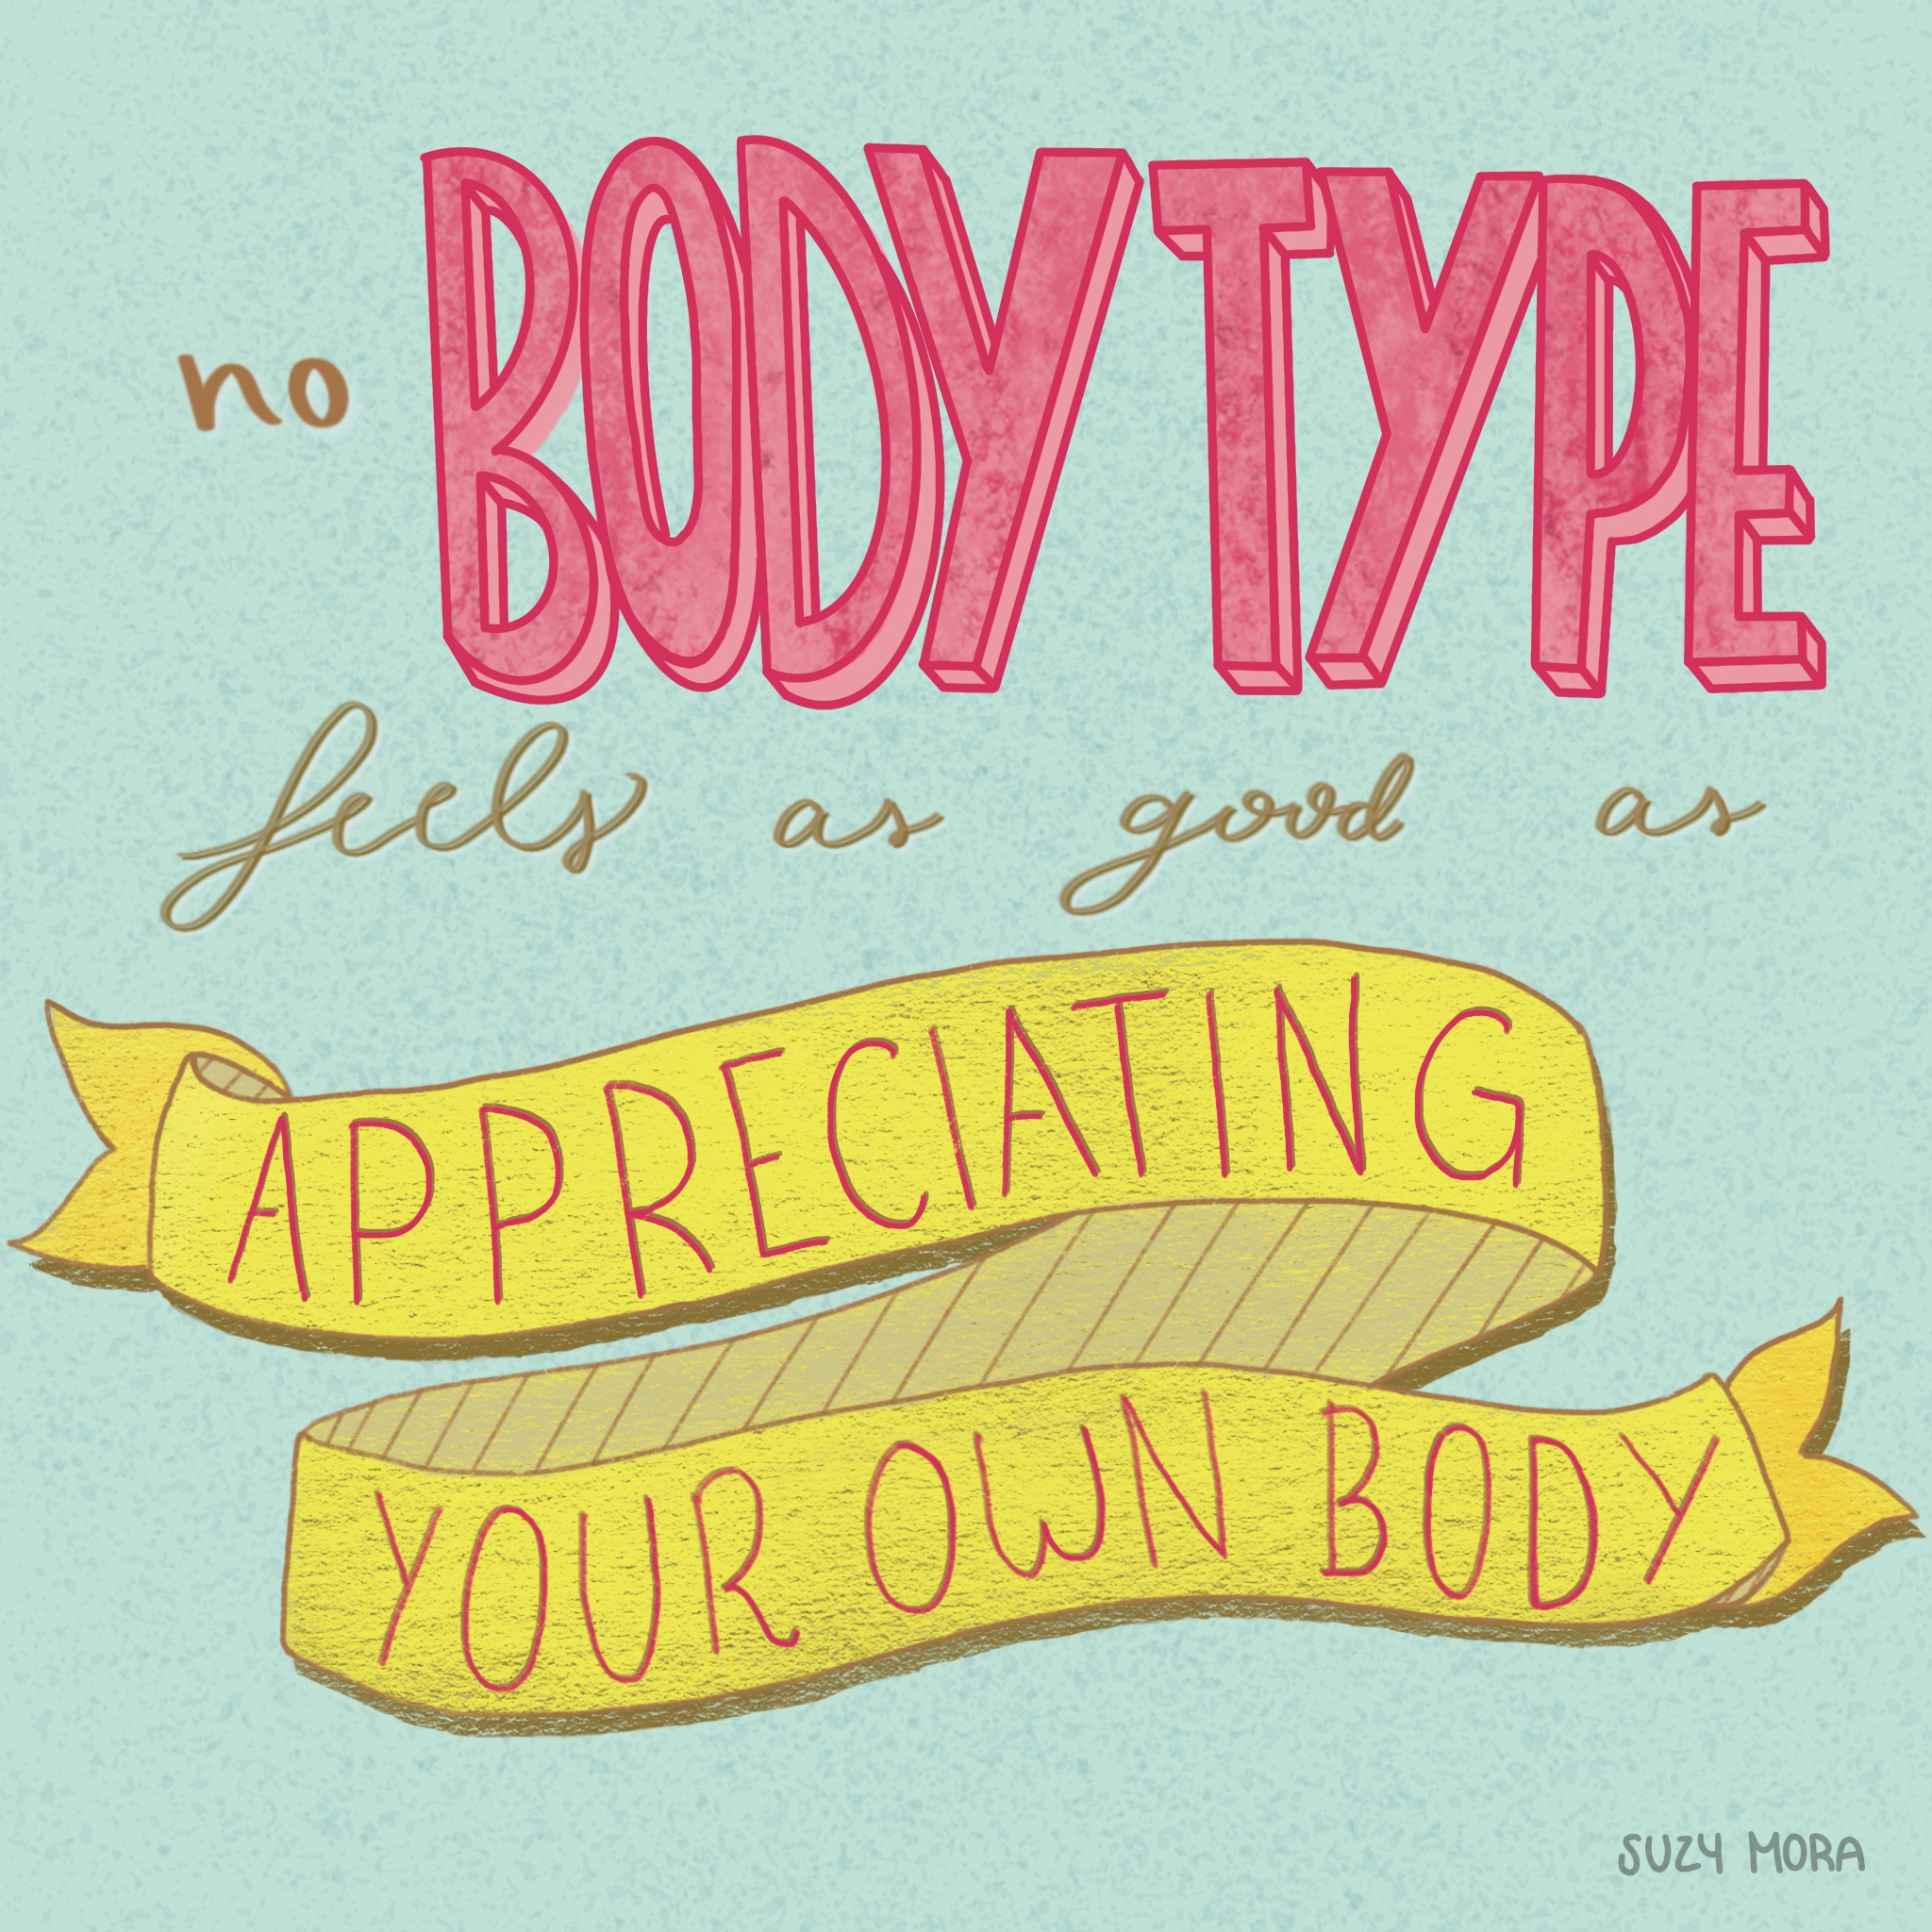 Appreciating your body